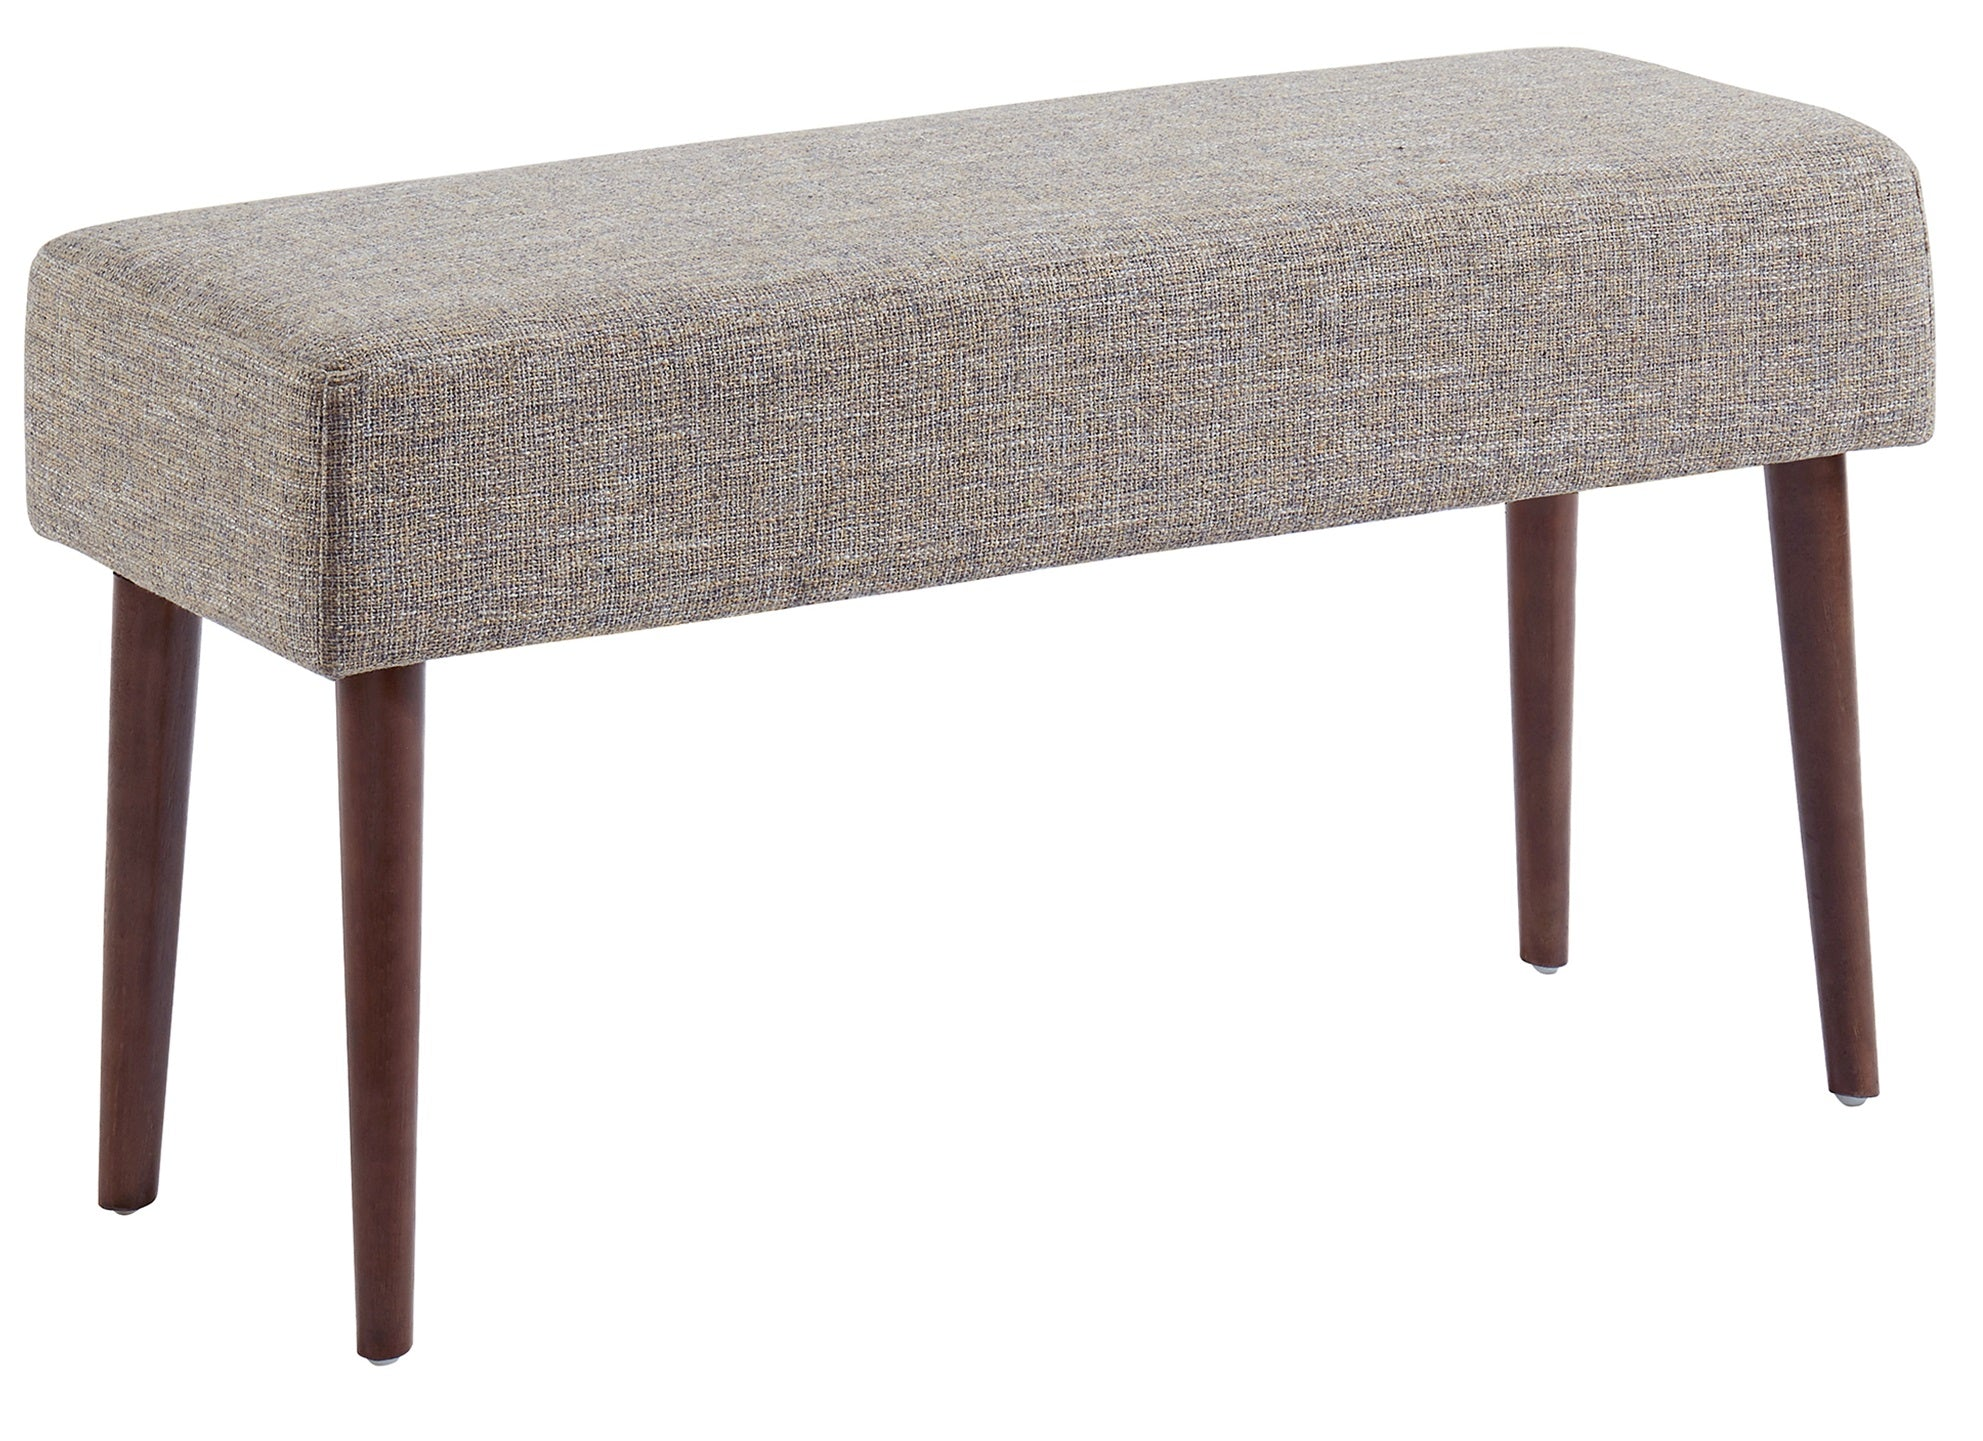 Minto Bench - Beige